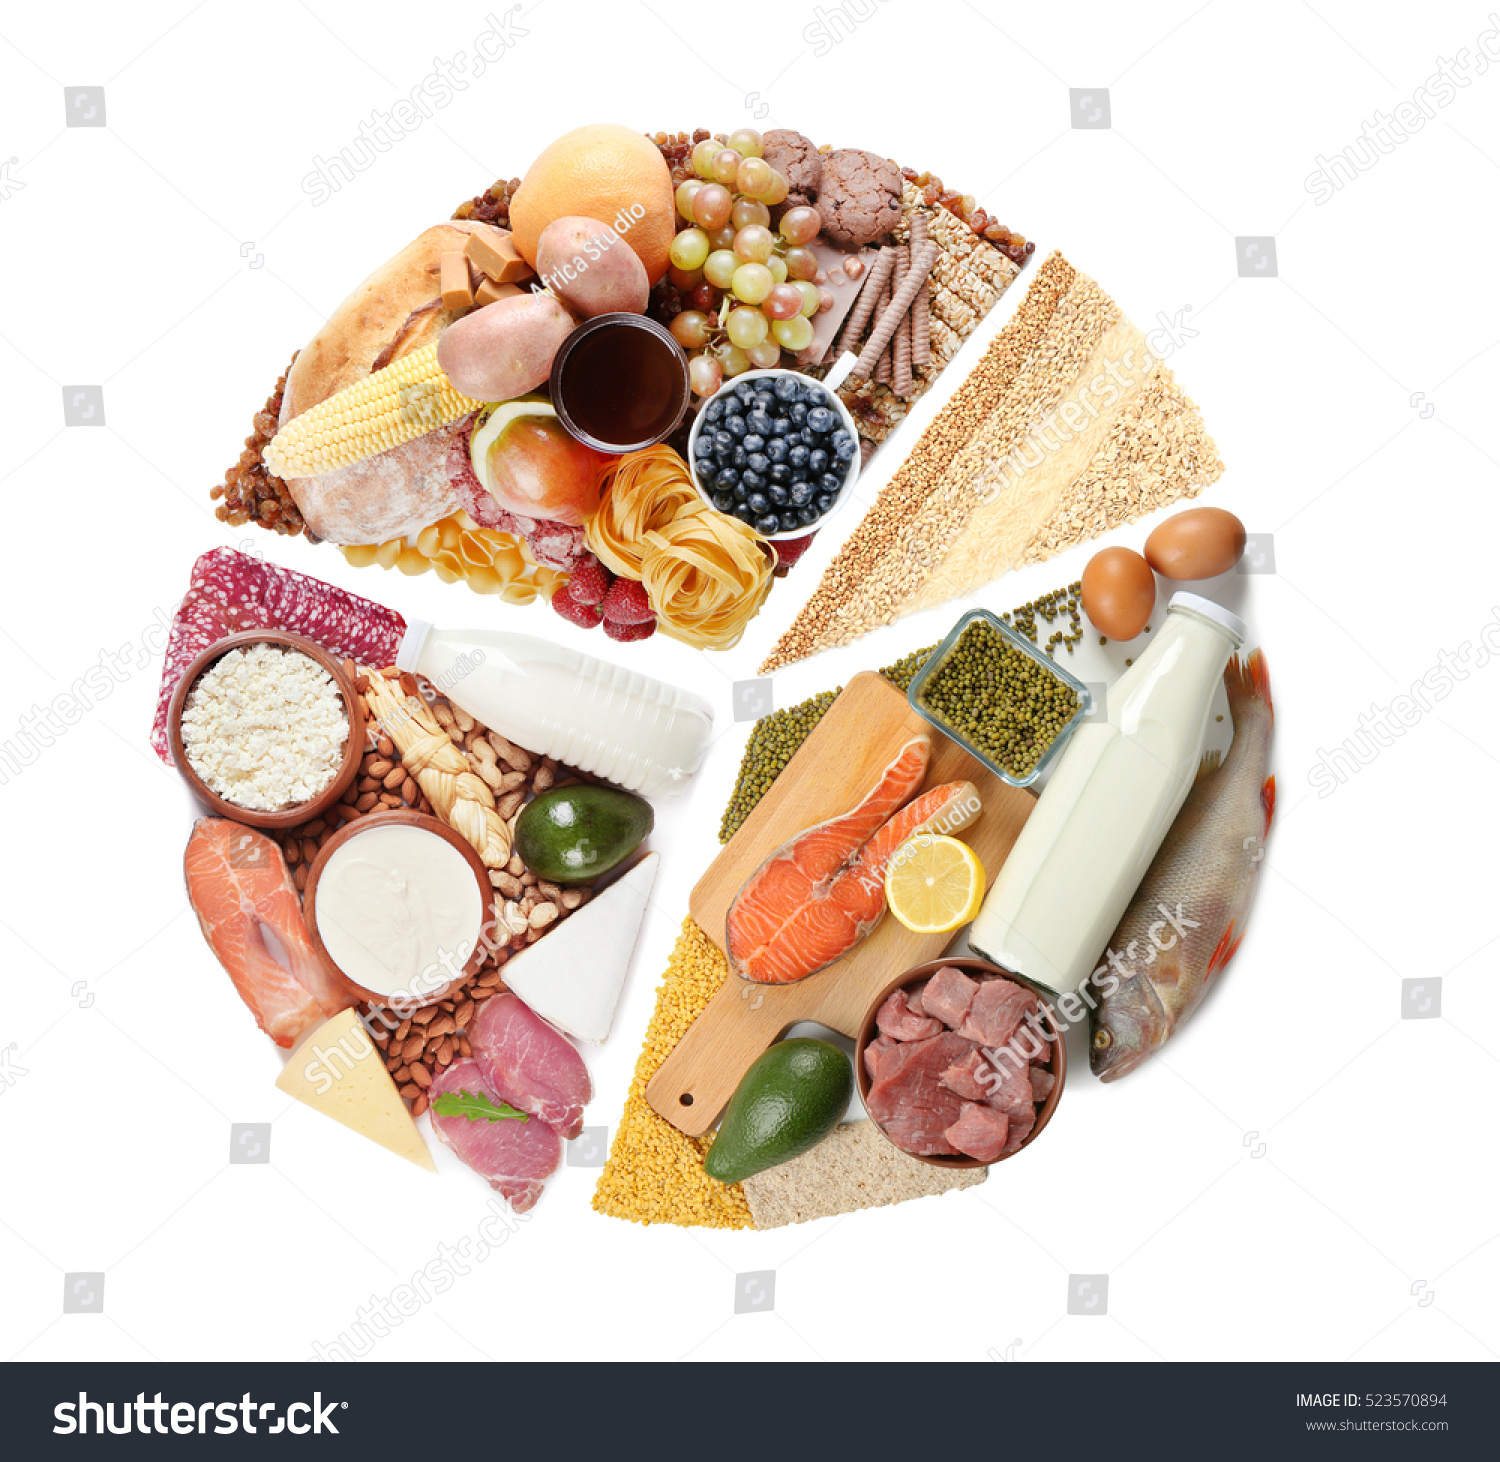 Healthy pie chart gallery free any chart examples healthy food pie chart gallery free any chart examples healthy pie chart choice image free any nvjuhfo Image collections